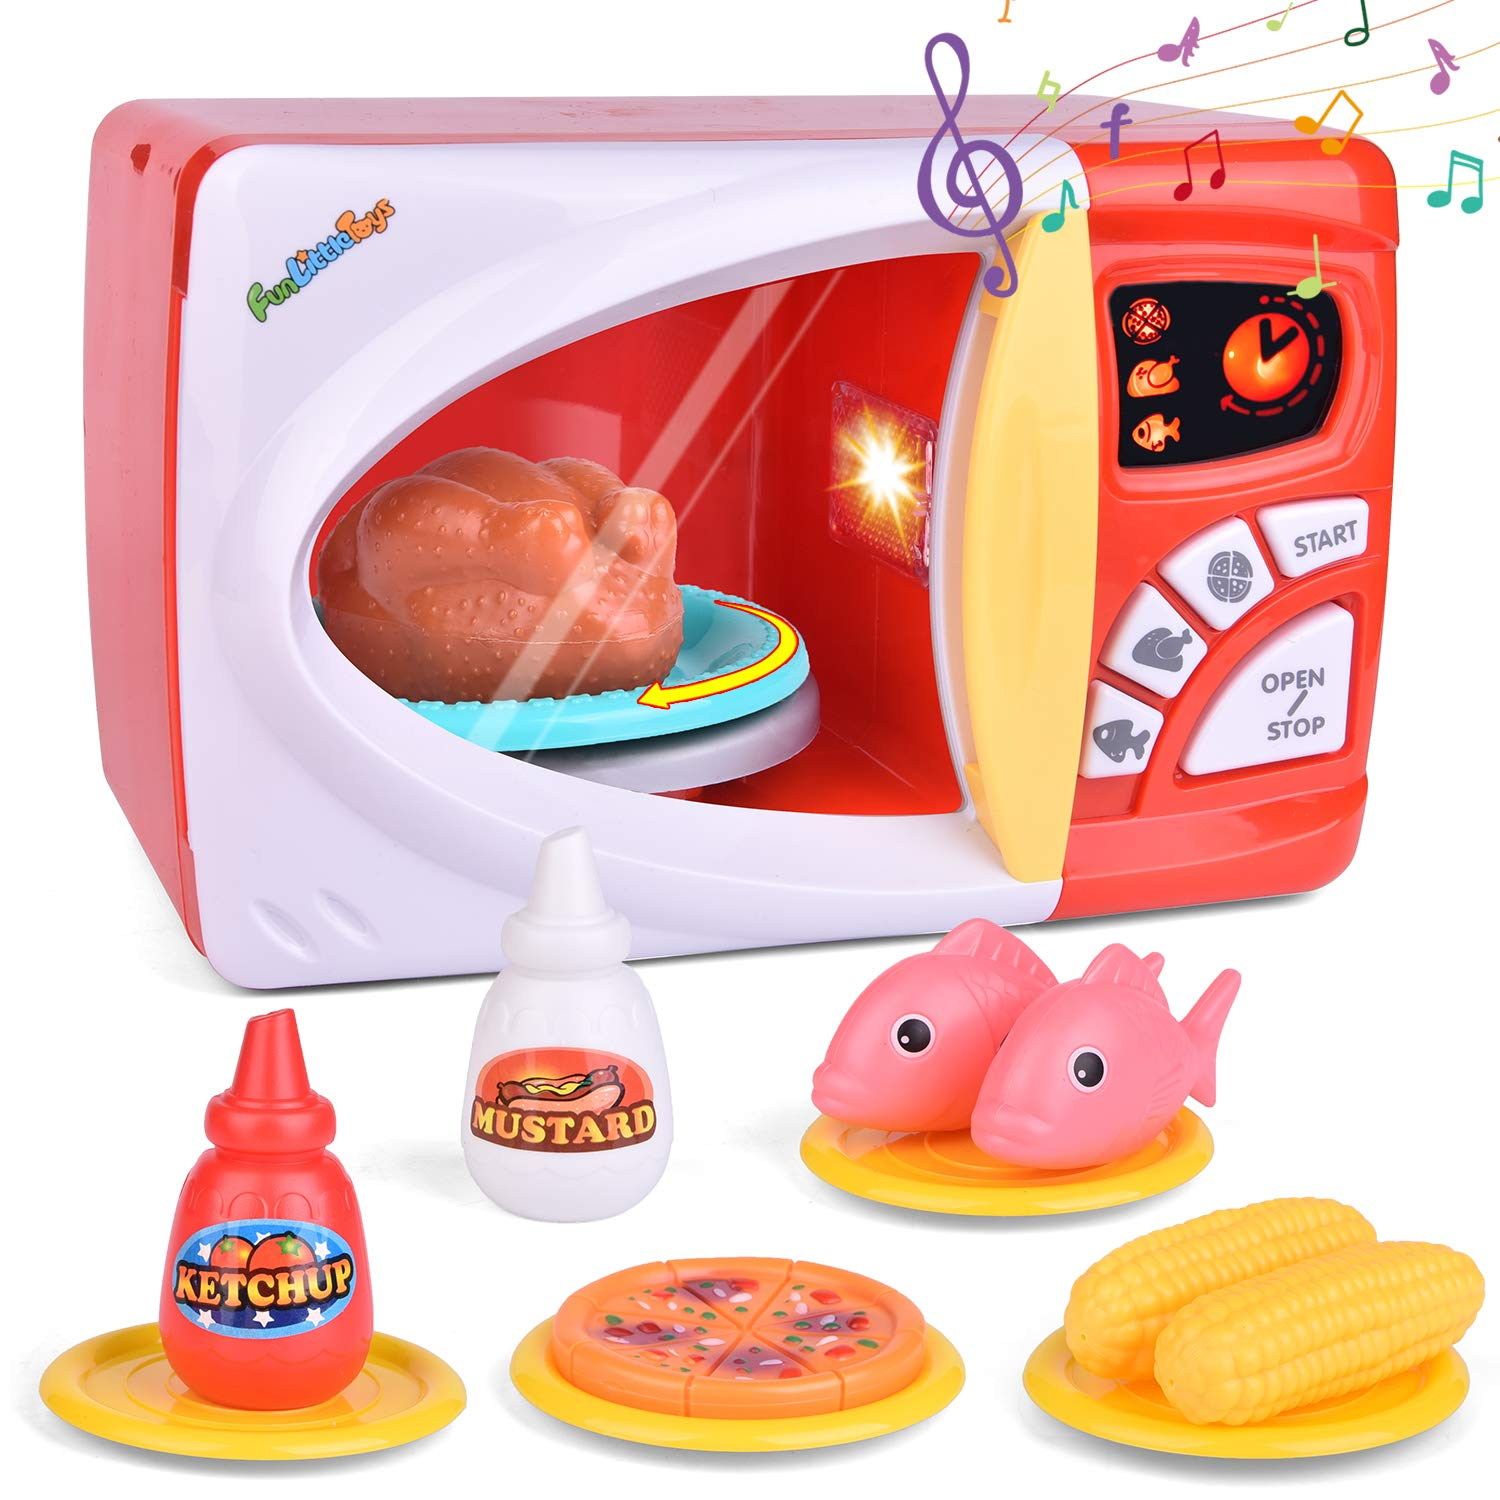 FunLittleToy Kids Play Kitchen, Pretend Play Set with Toy Microwave, Play Foods and Accessories